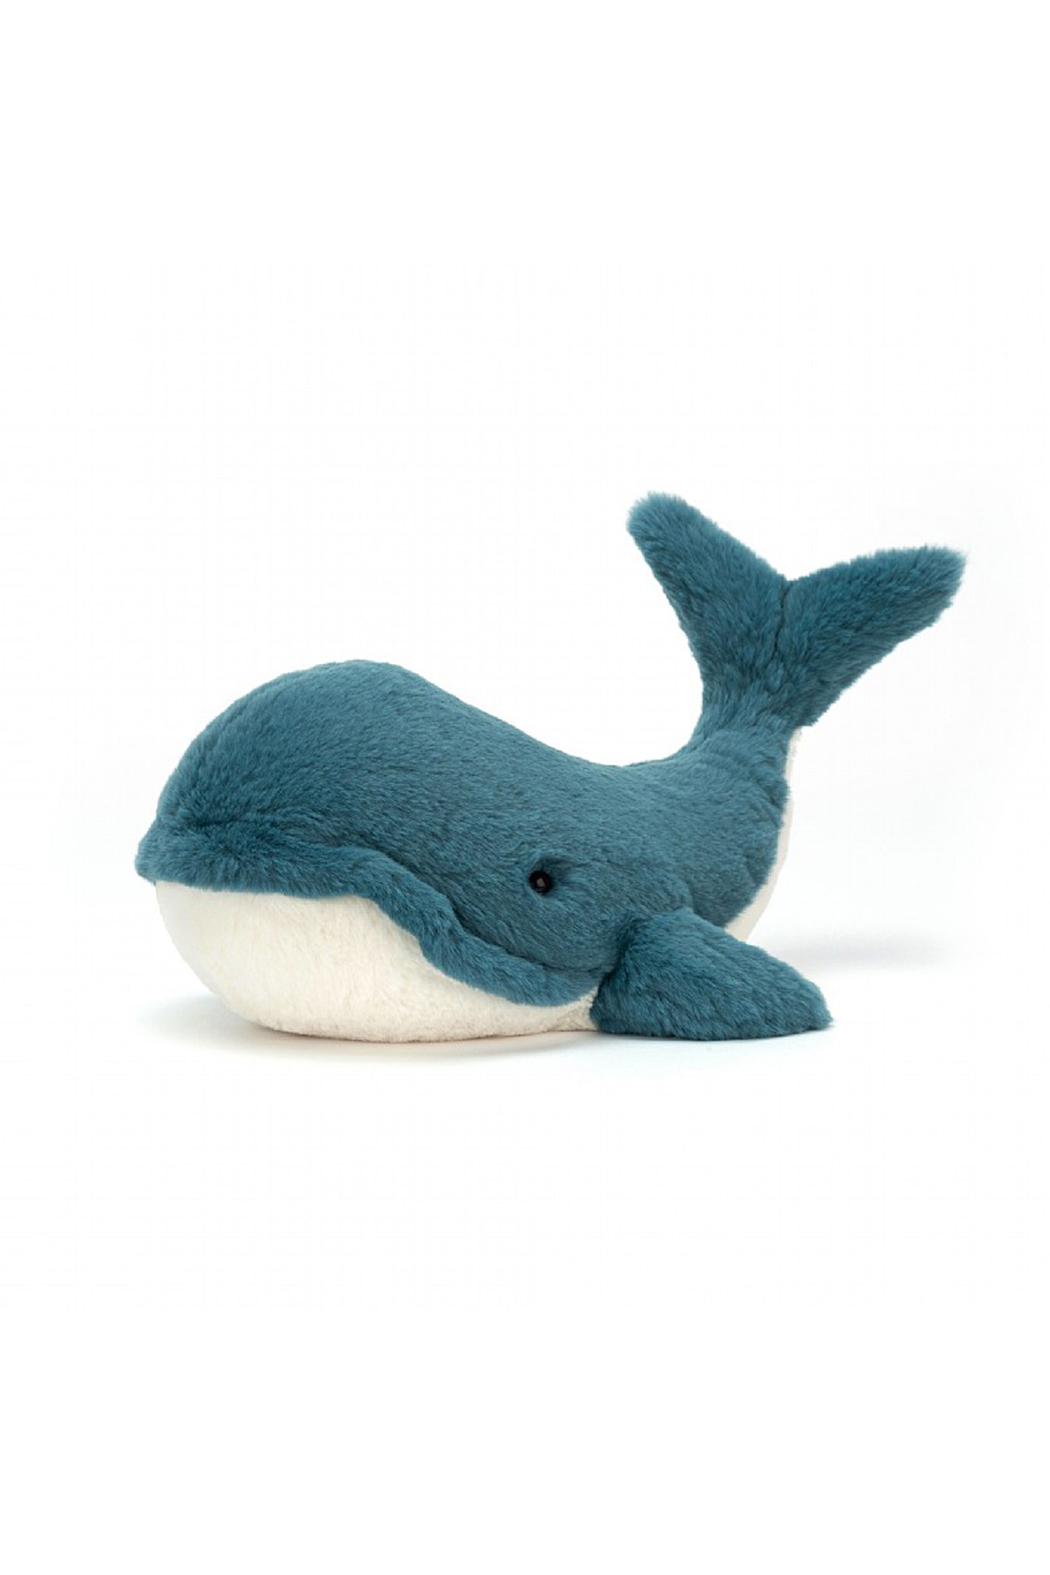 Jellycat Wally Whale Small - Main Image